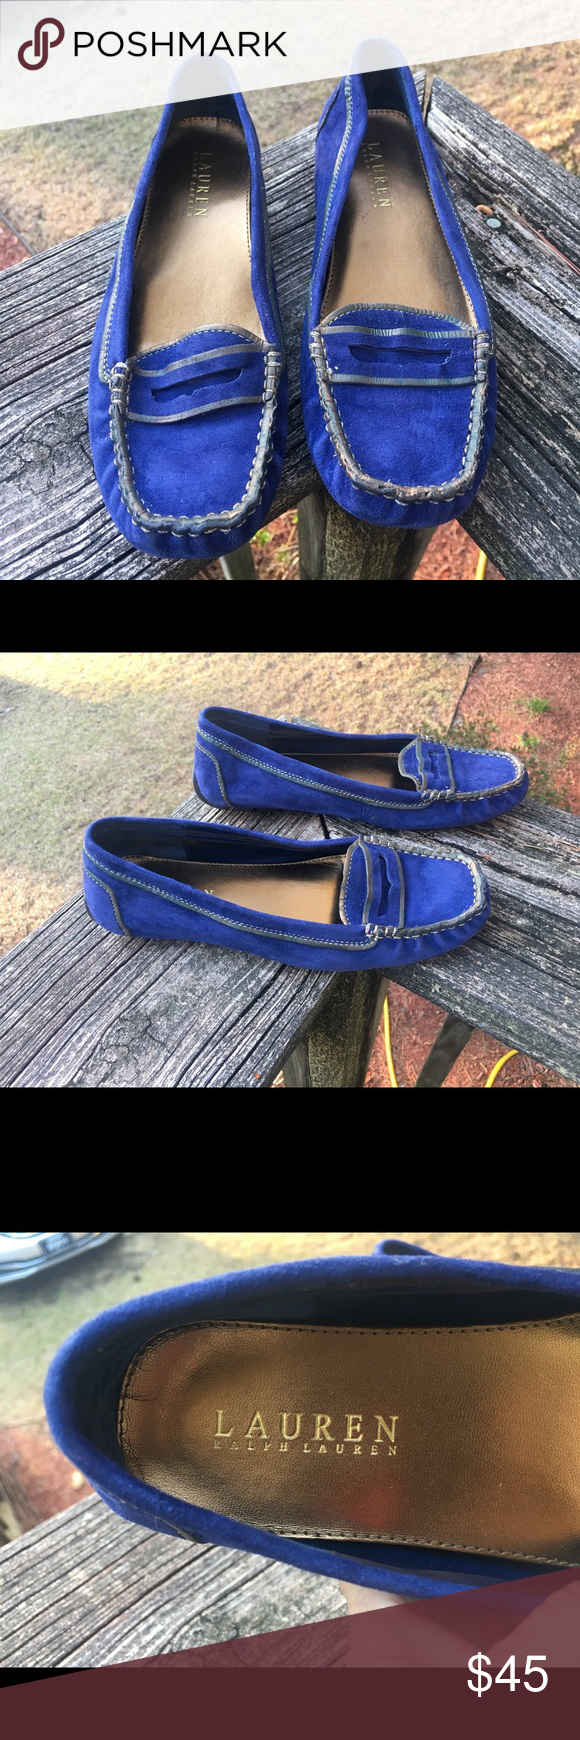 Ralph Lauren These are so cute and comfy. These are a beautiful blue suede. With a gold trim. Really comfortable. Ralph Lauren Shoes Flats & Loafers